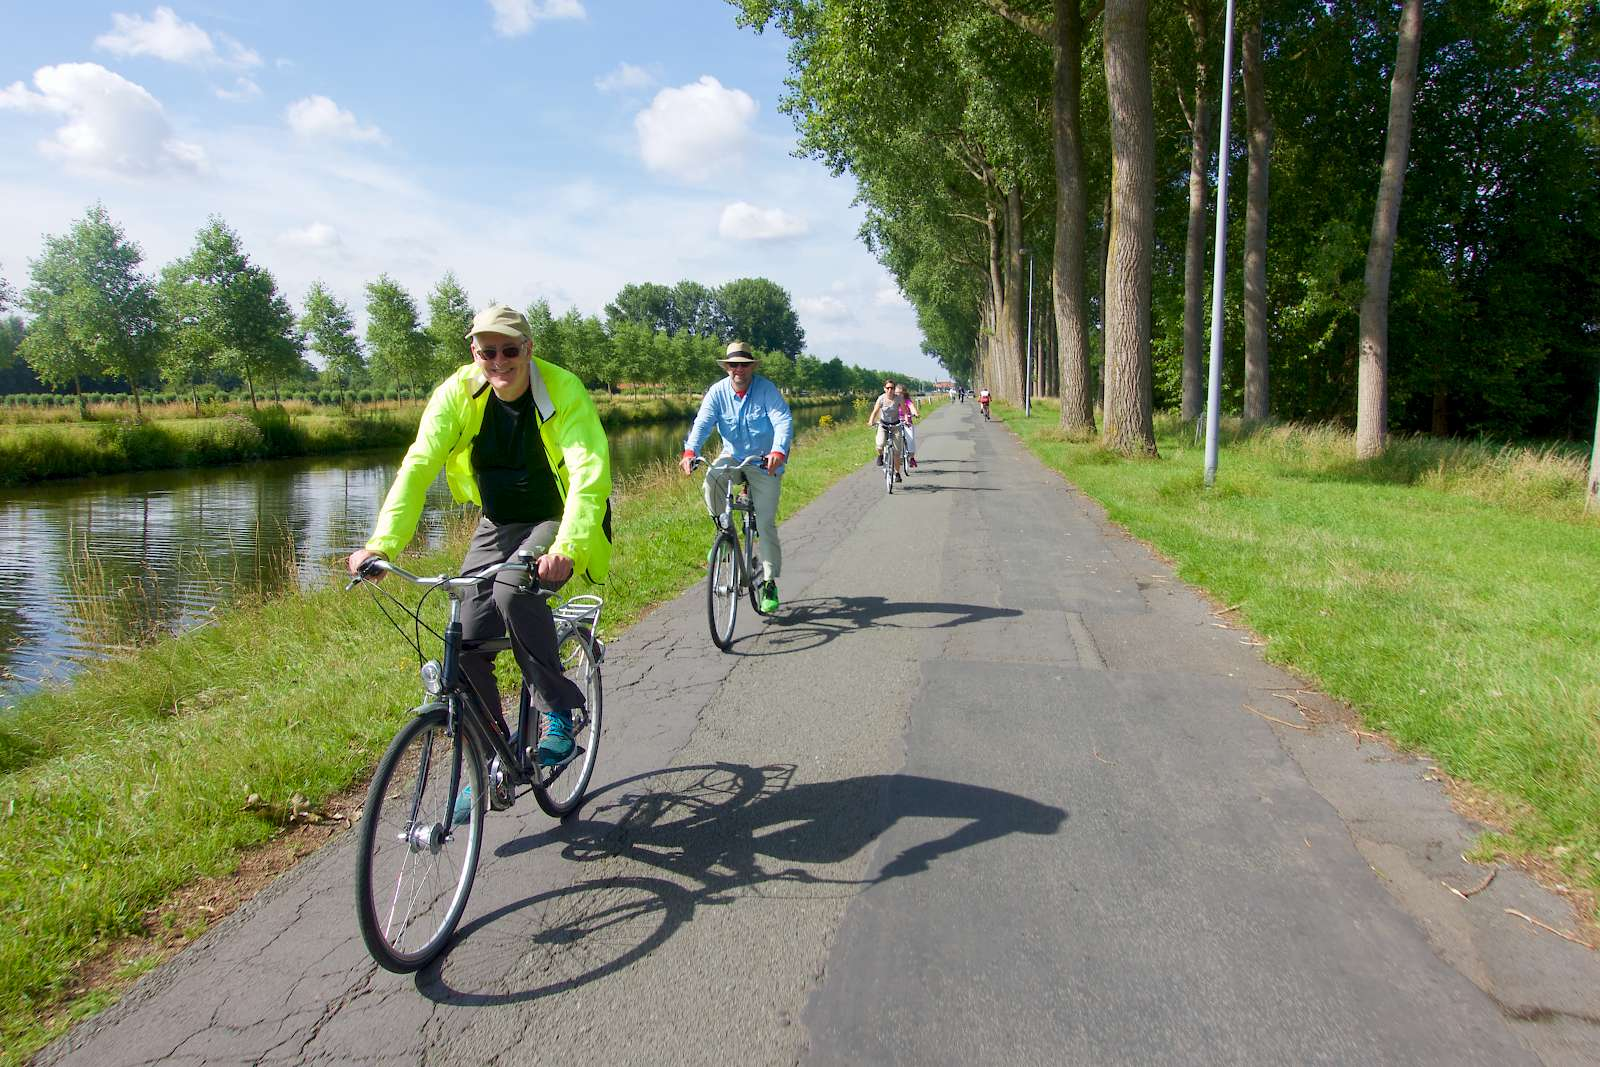 Fun, Built-in Fitness While Sightseeing Bike path Amsterdam